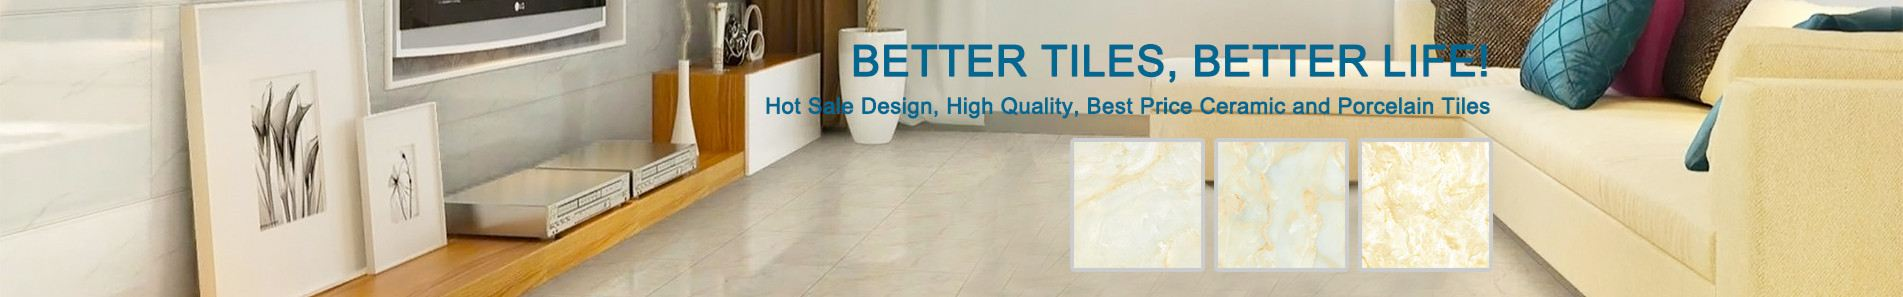 New Design Porcelain And Ceramic Tiles Best Price High Quality